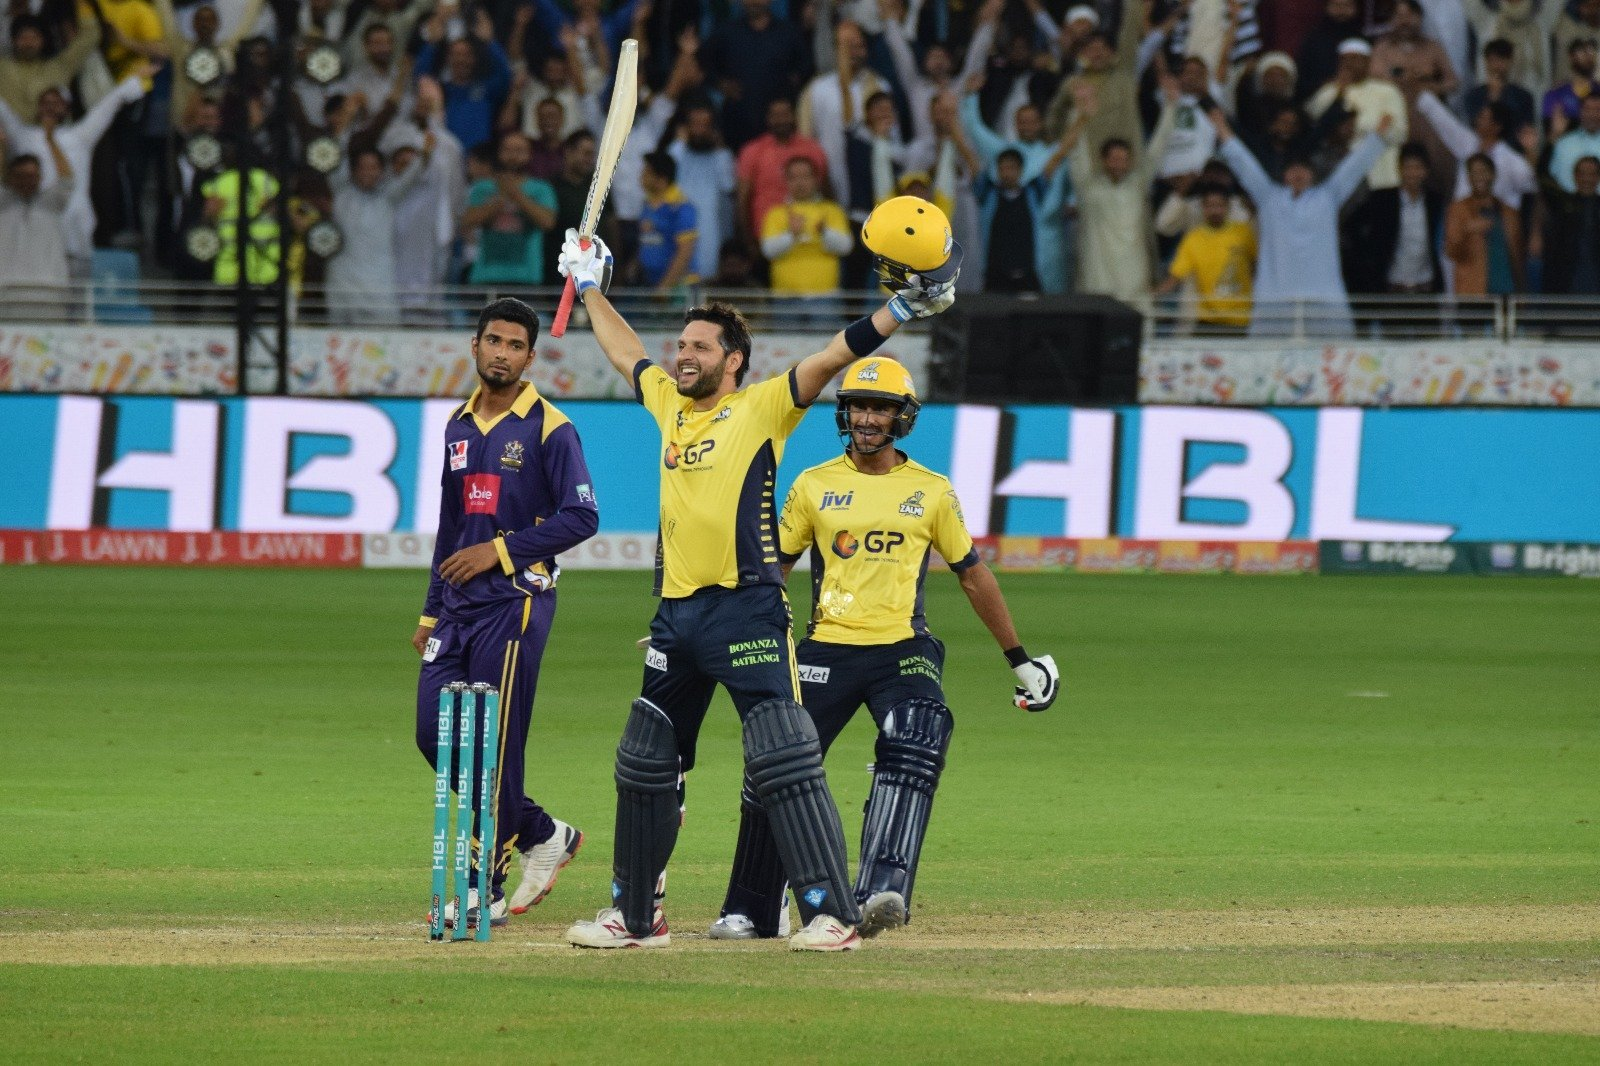 afridi proved he still has the match winner in him photo courtesy psl